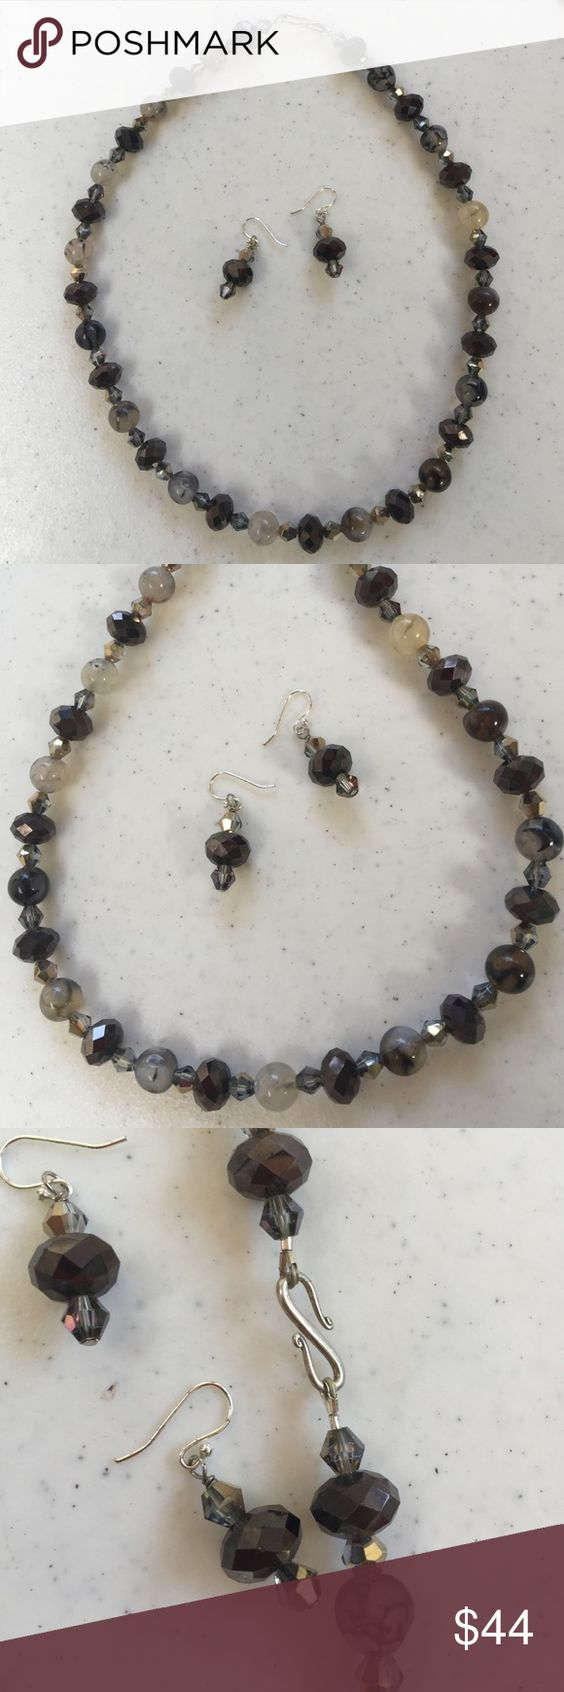 """Agate necklace and earrings This Princess style length is 18.5""""inches made with Agate stones and Crystal AB finished with S-hook SS fill clasp. The earrings are included! Jewelry Necklaces"""